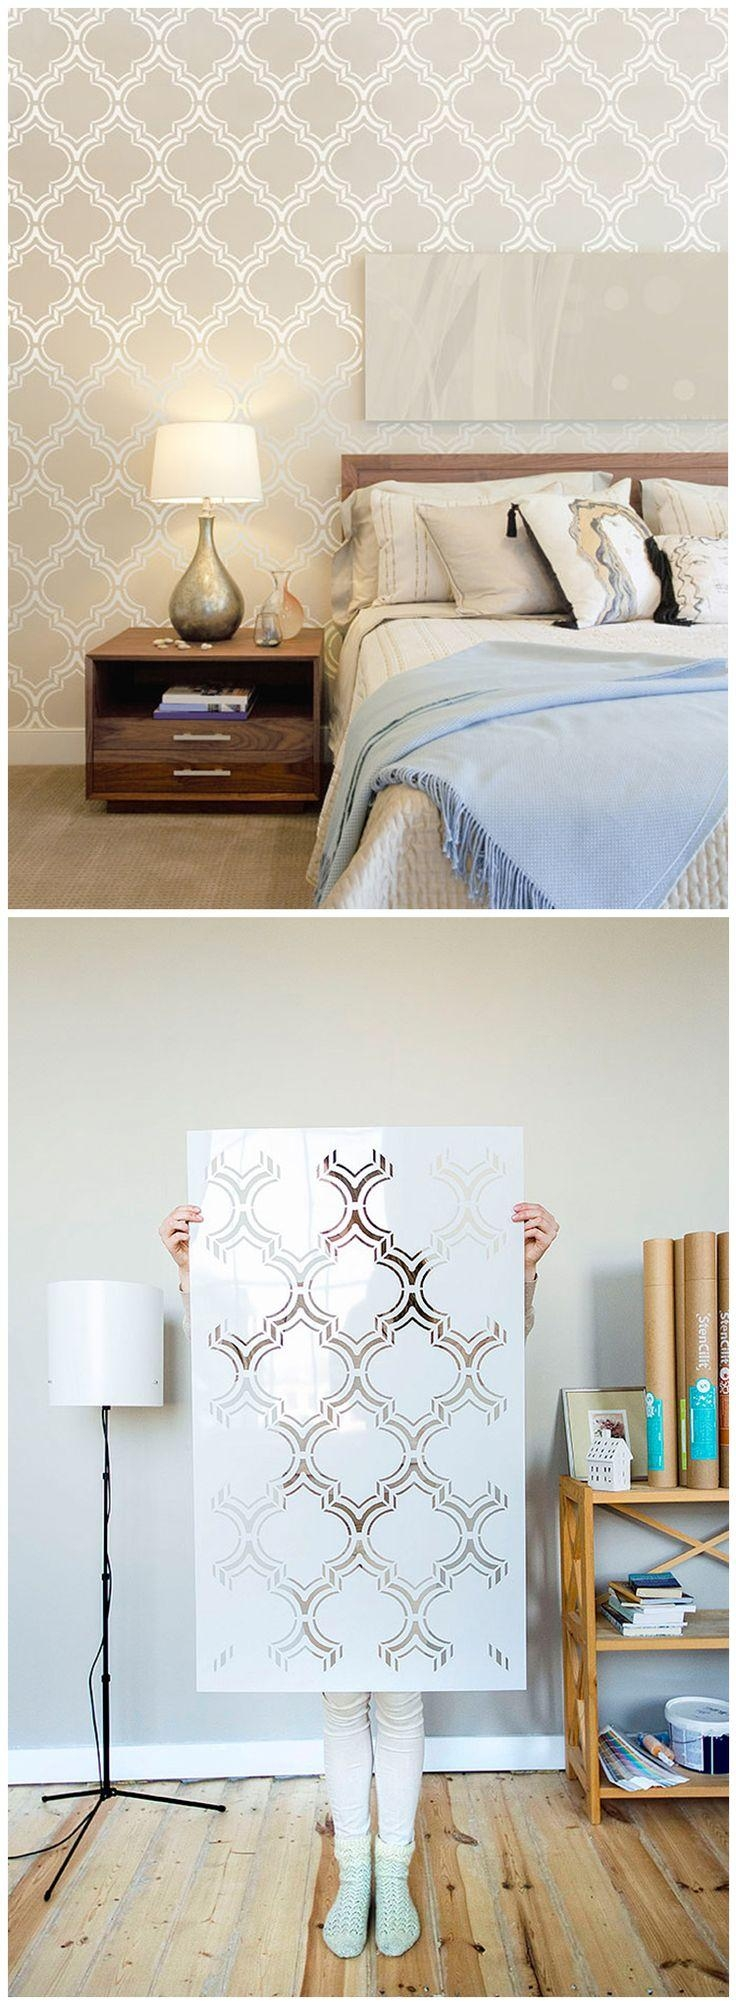 25+ Best Moroccan Wall Stencils Ideas On Pinterest | Moroccan Regarding Space Stencils For Walls (View 19 of 20)